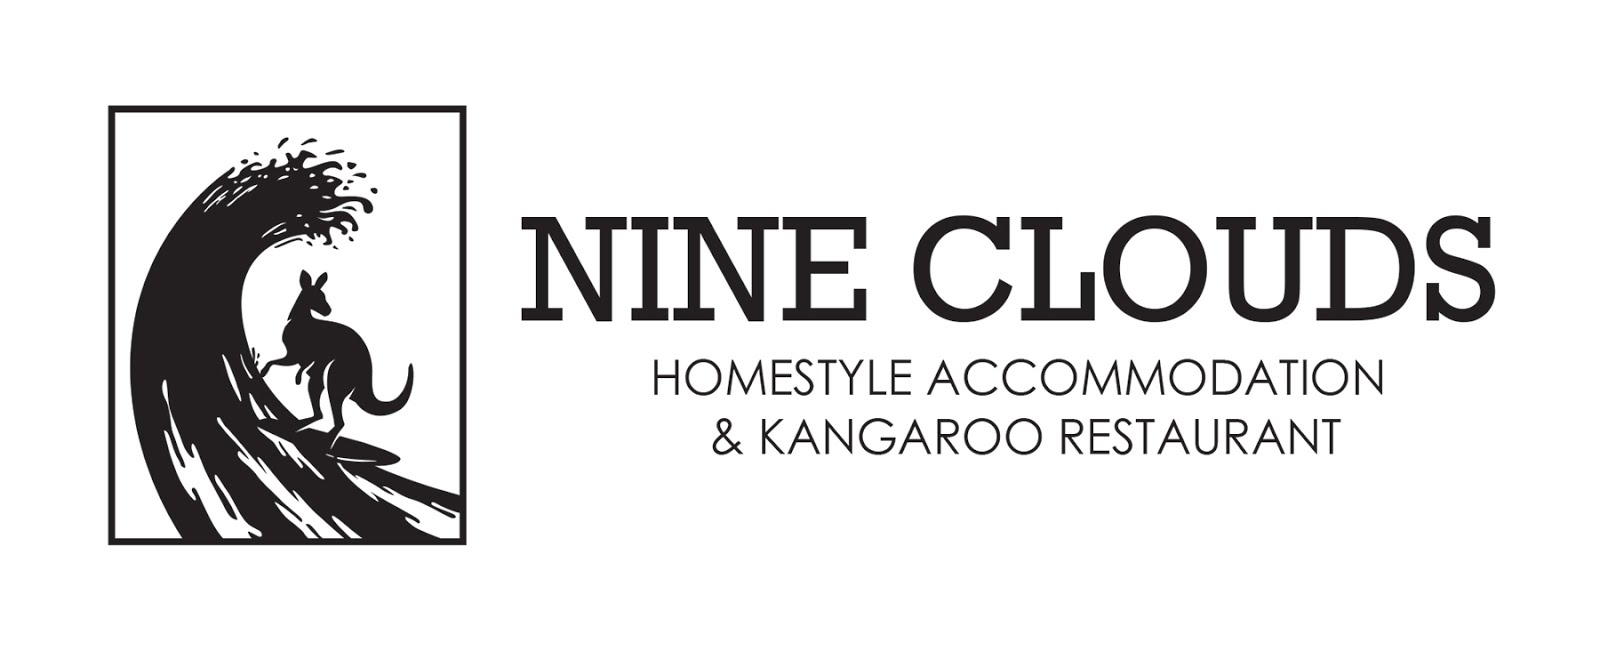 Nine Clouds Kangaroo